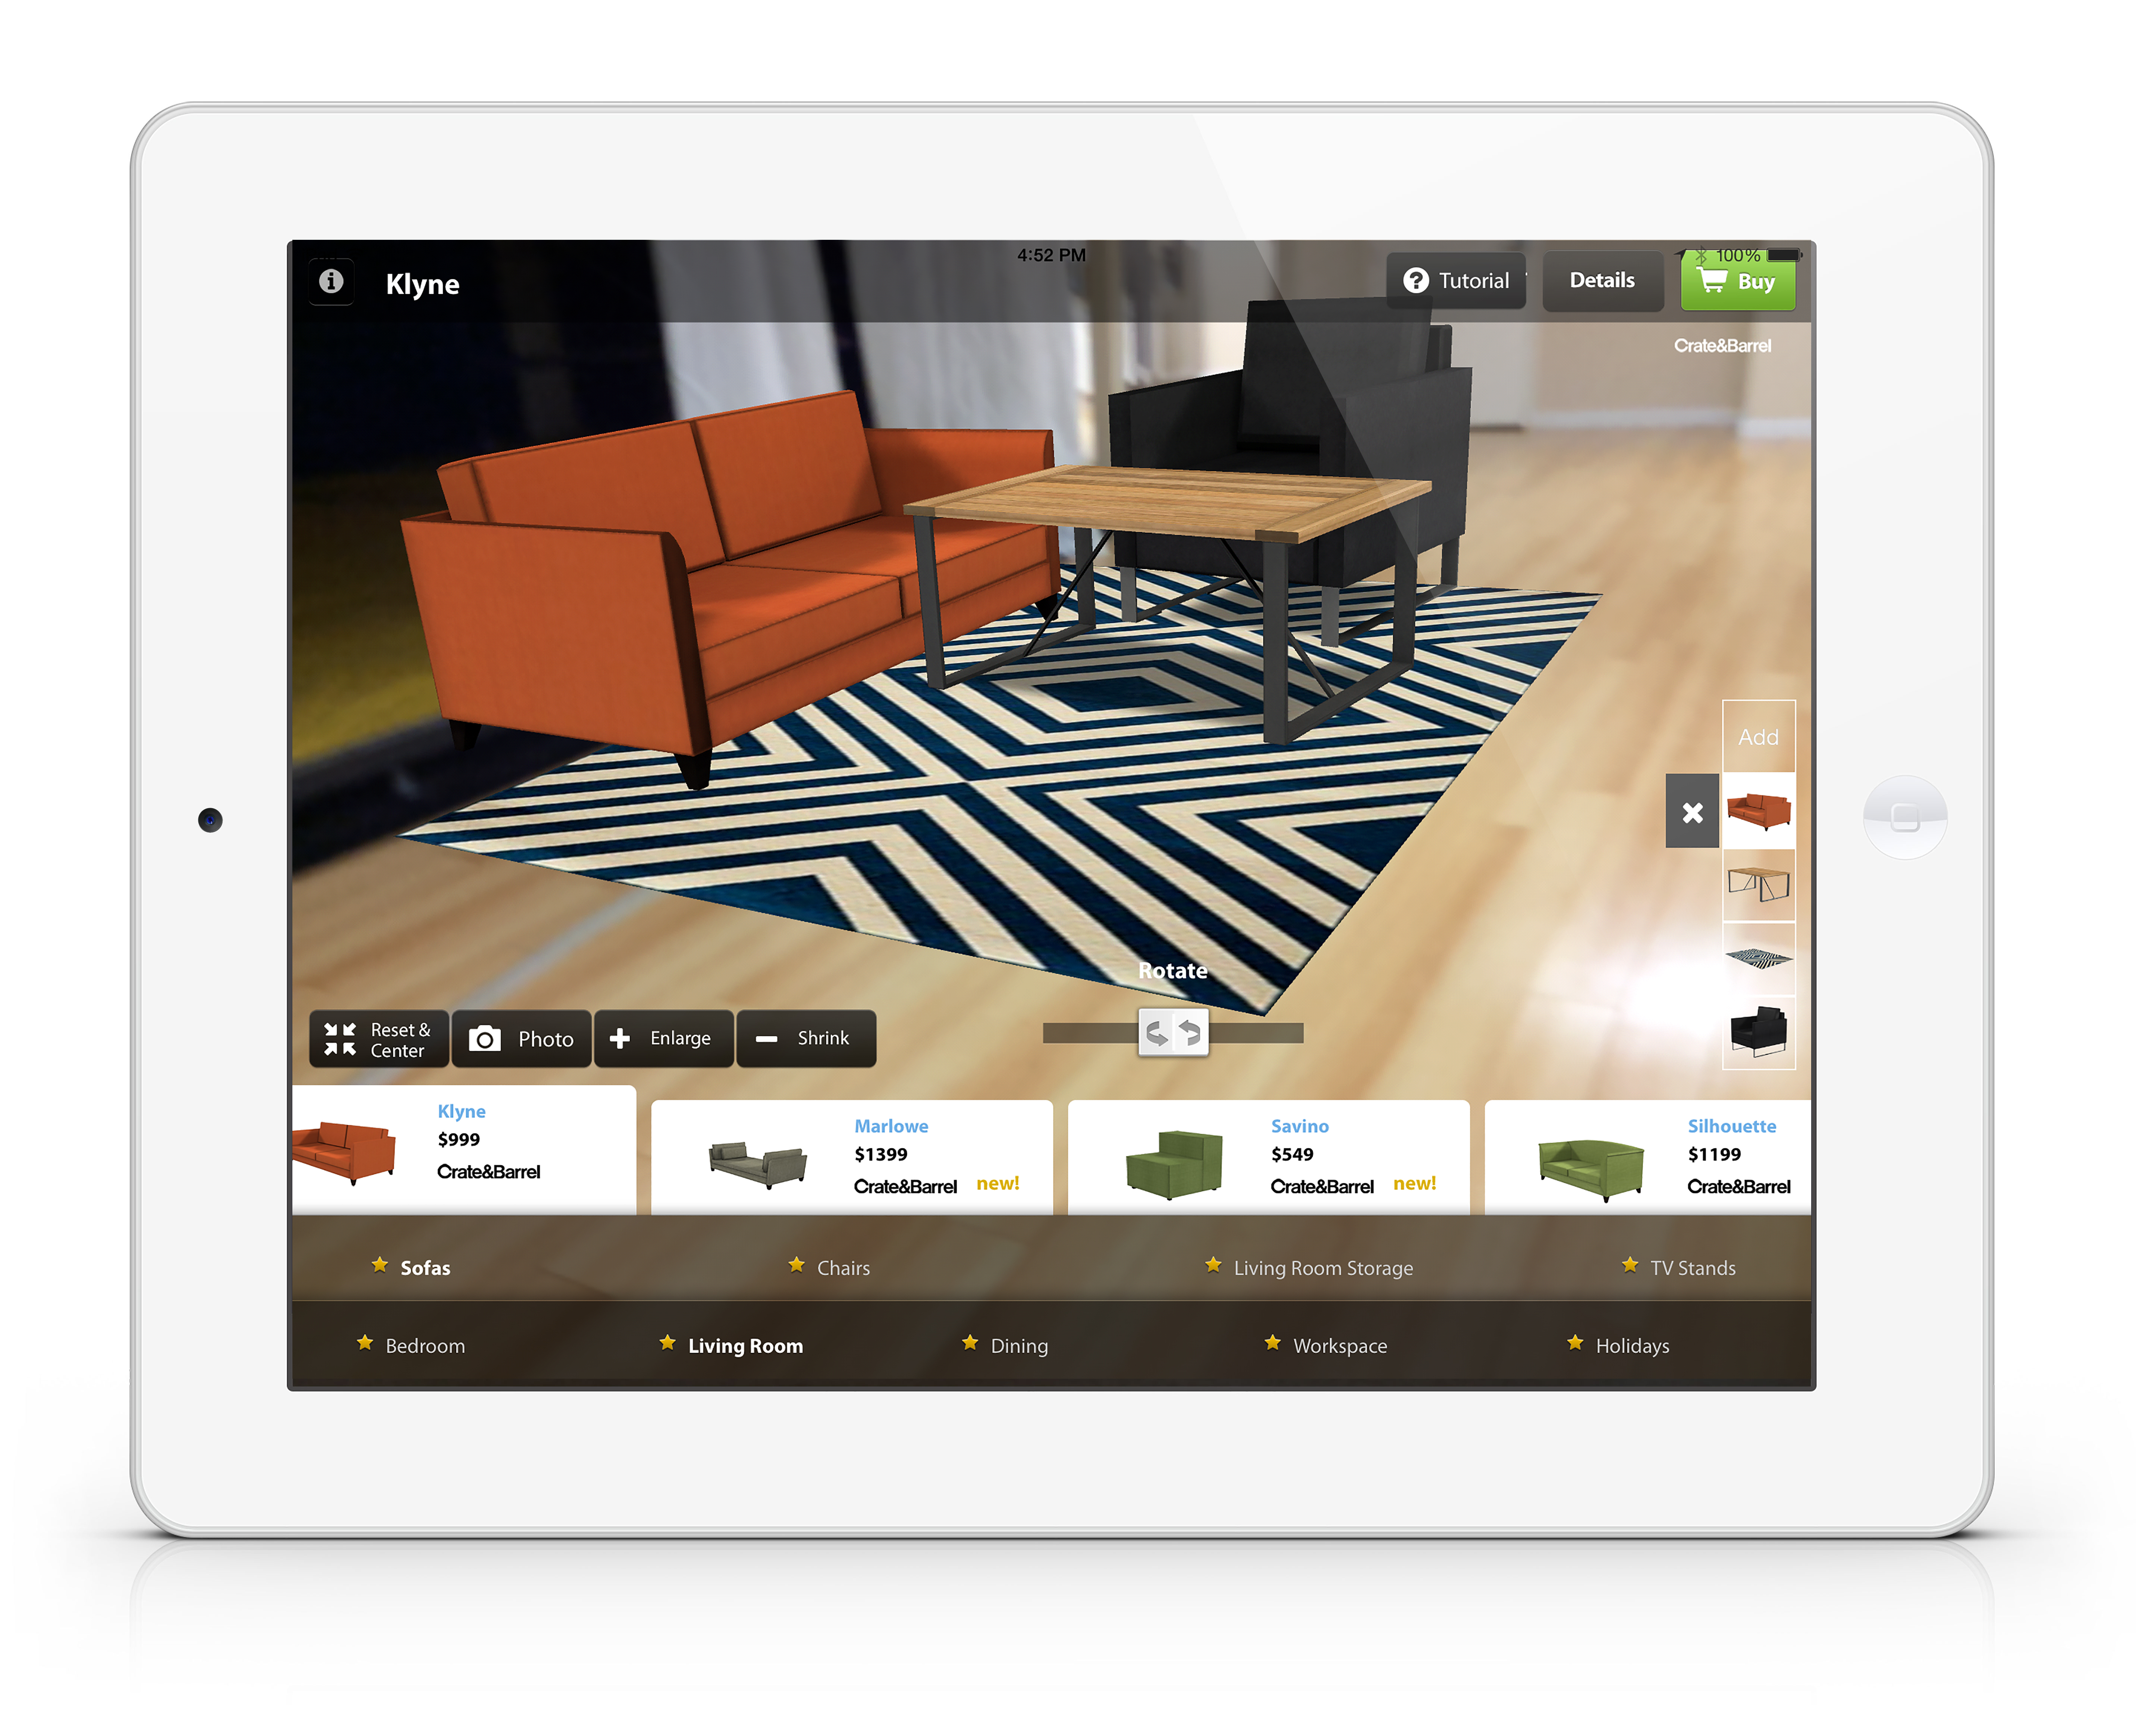 Furnish app on iPad with orange couch and coffee table